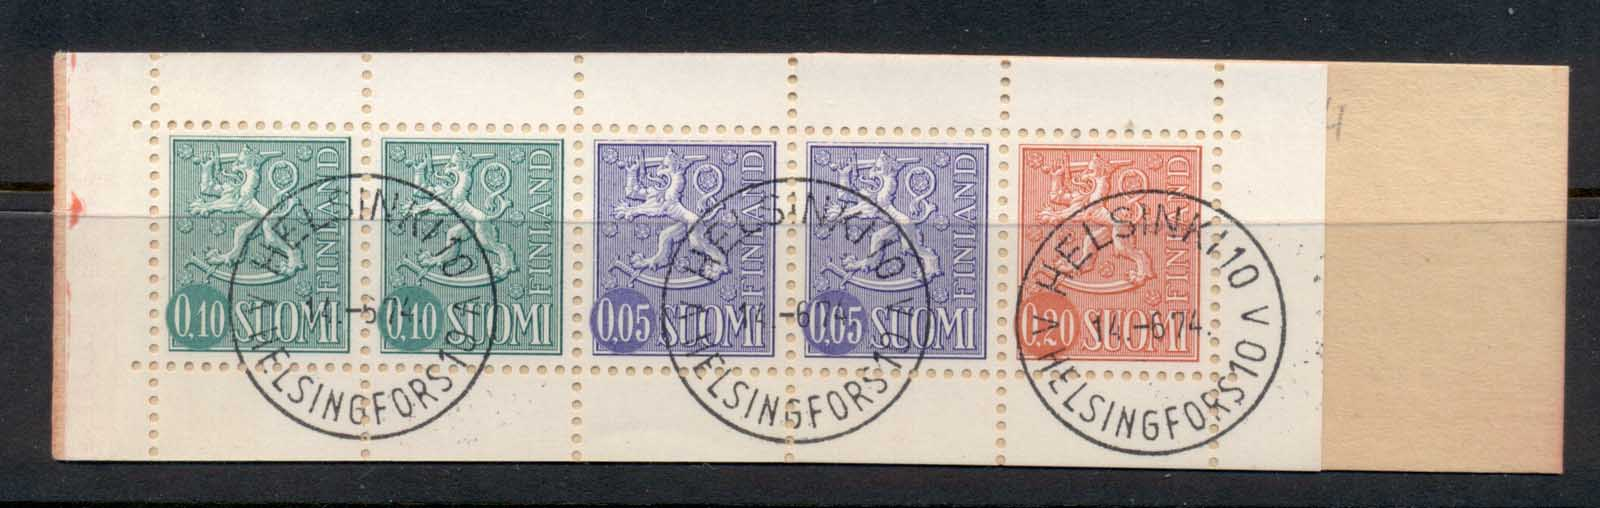 Finland 1963-67 Arms of Finland booklet 2x10, 2x5, 1x20 CTO